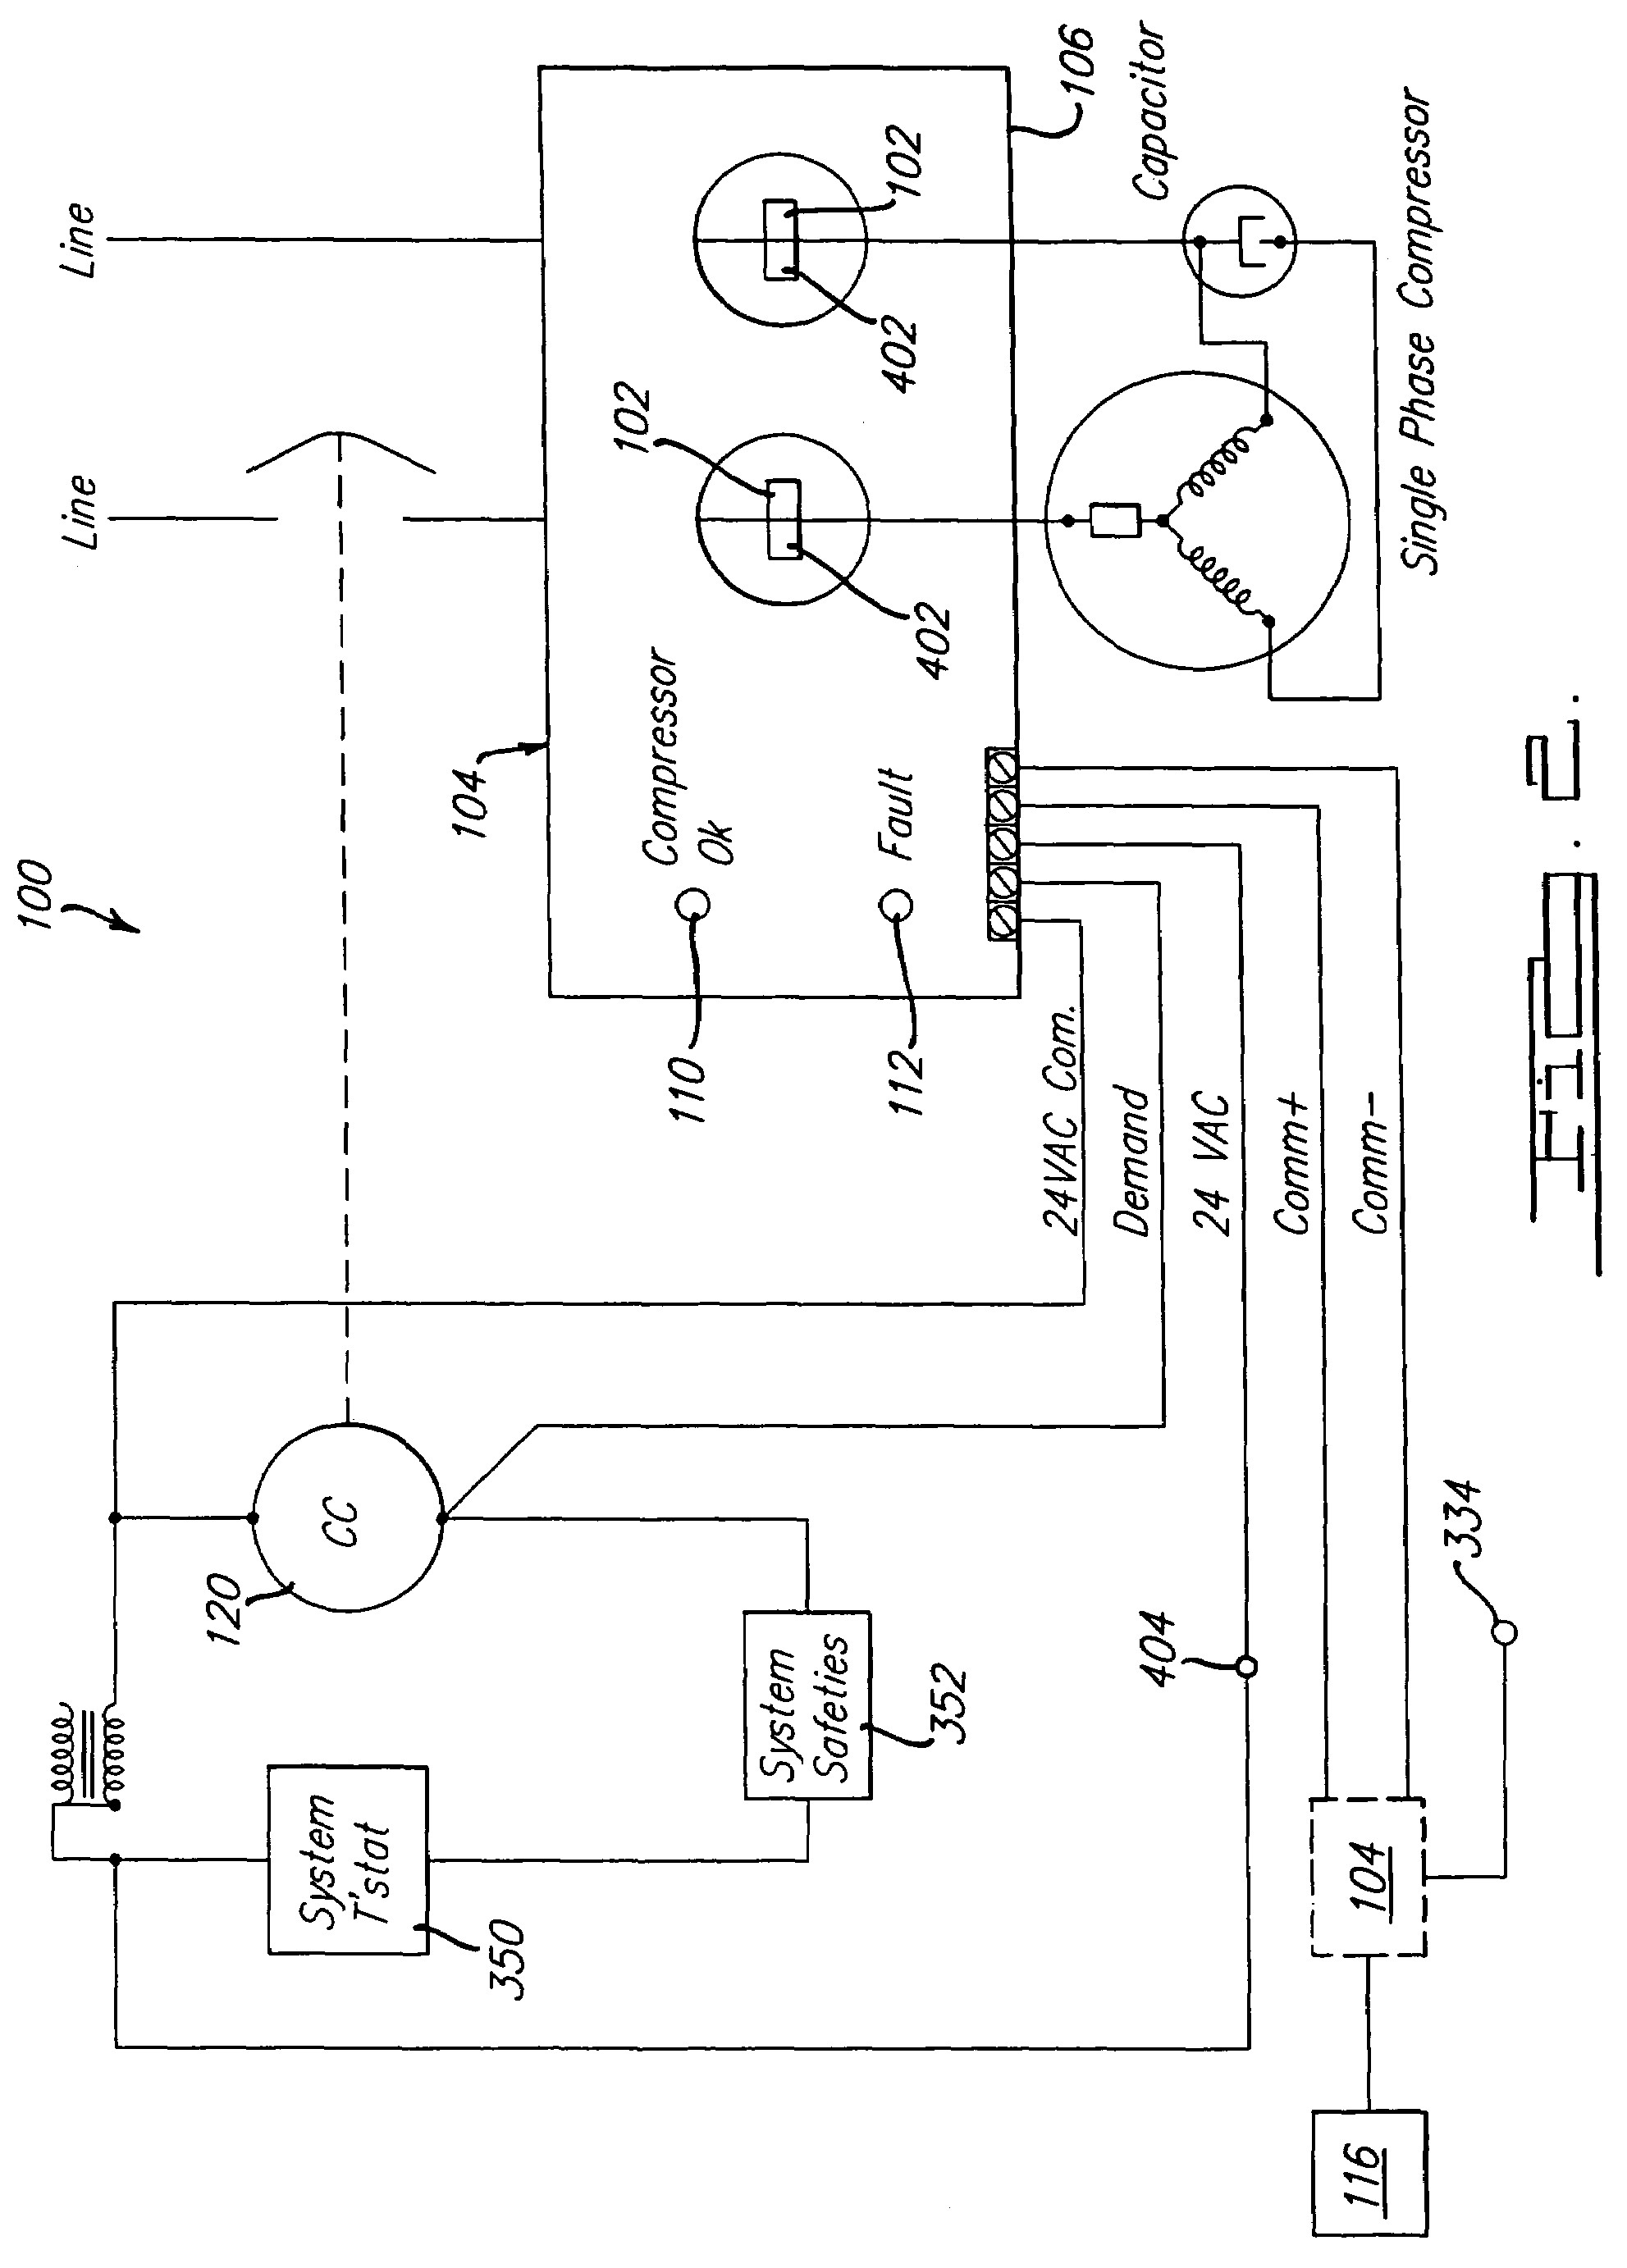 Wiring Diagram For Copeland Compressor $ Apktodownload.com